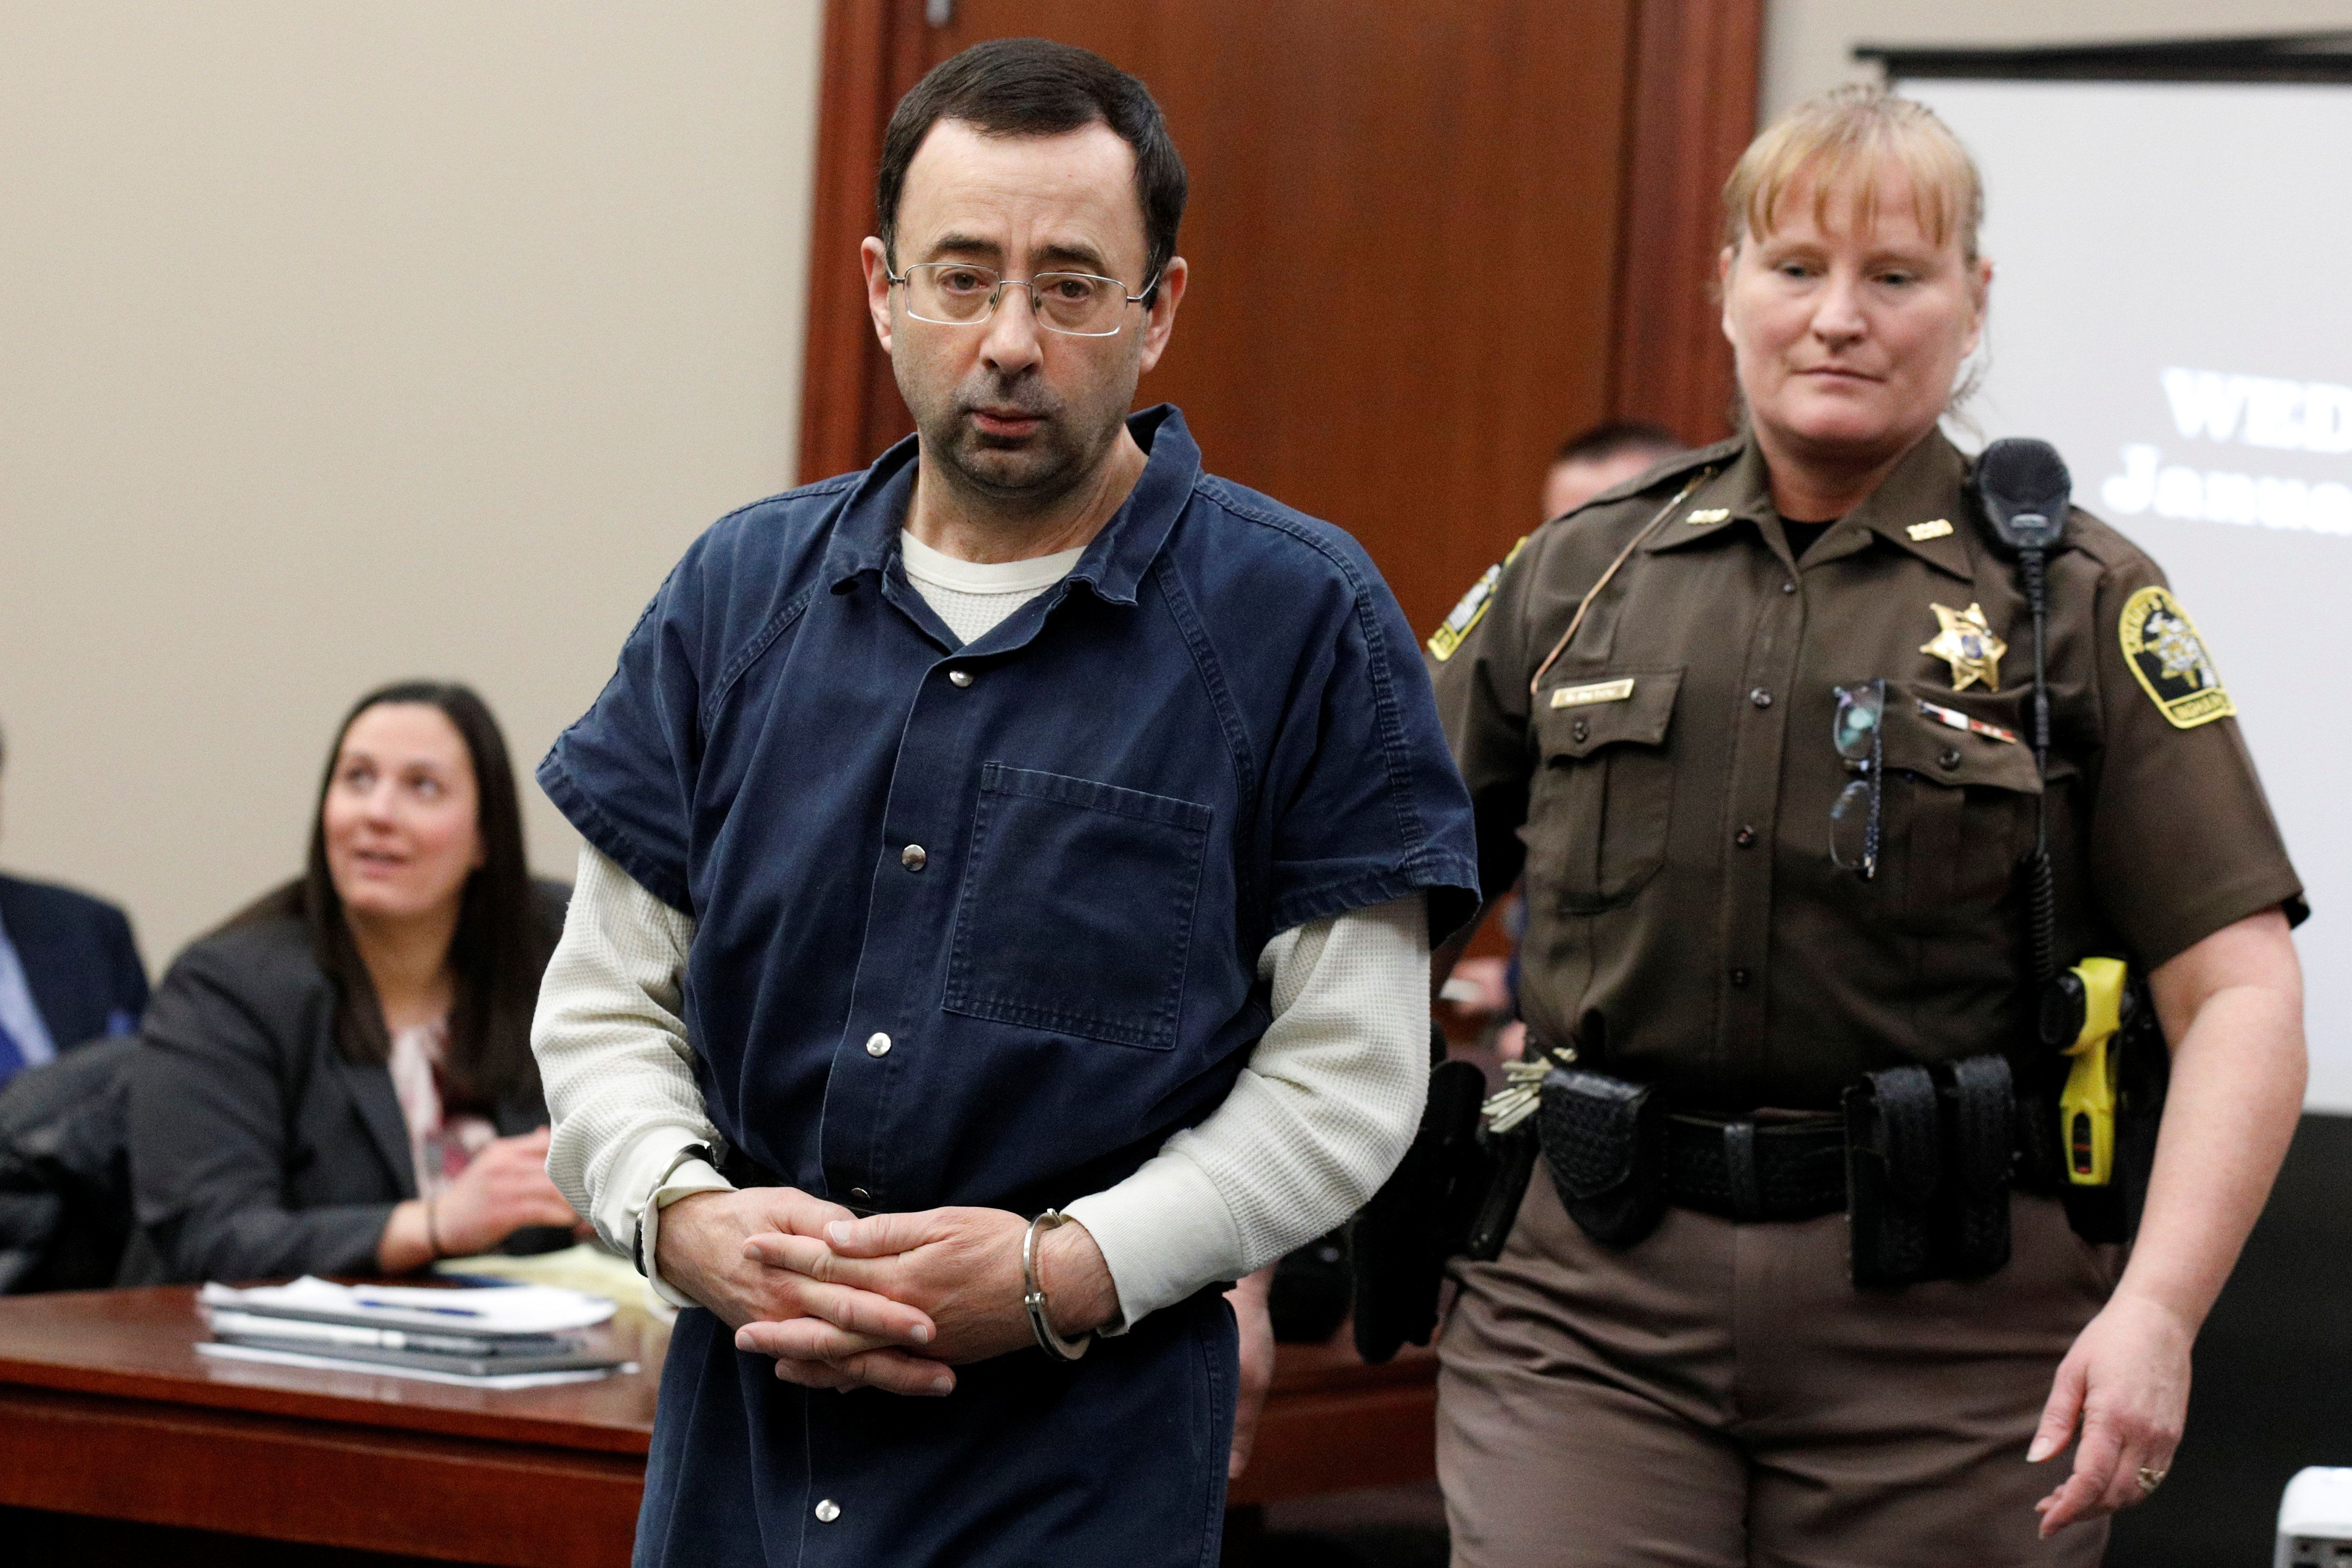 Larry Nassar is escorted by a court officer during his sentencing hearing in Lansing, Michigan, on Jan. 17, 2018.